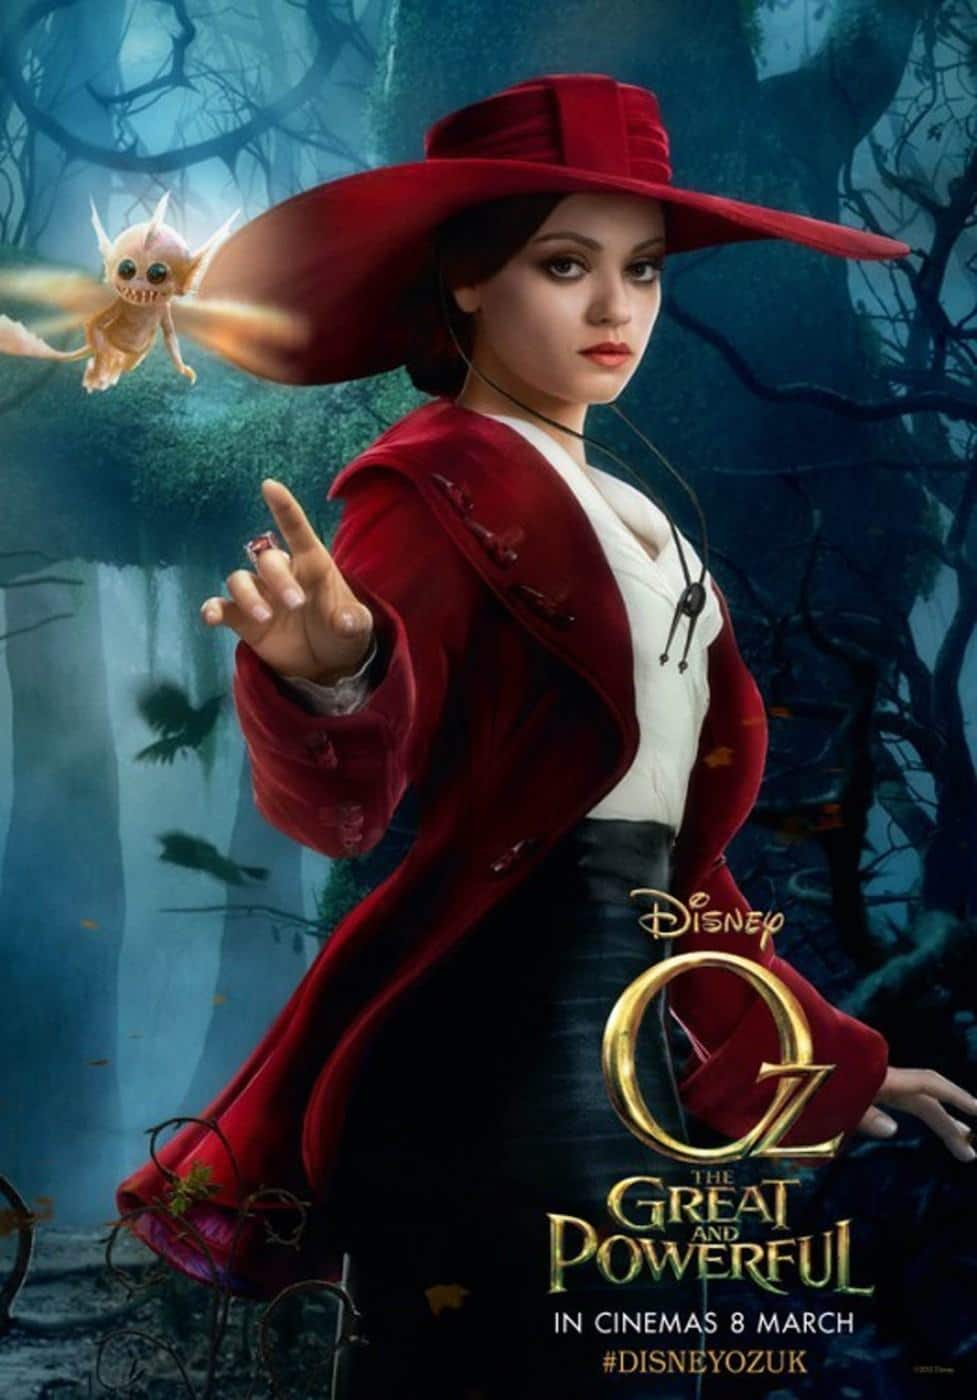 "Image: 0152722777, License: Rights managed, 26-1-2013 ""Oz the Great and Powerful"" film posters Pictured: Mila Kunis, Model Release: No or not aplicable, Credit line: Profimedia-Red Dot, Planet"